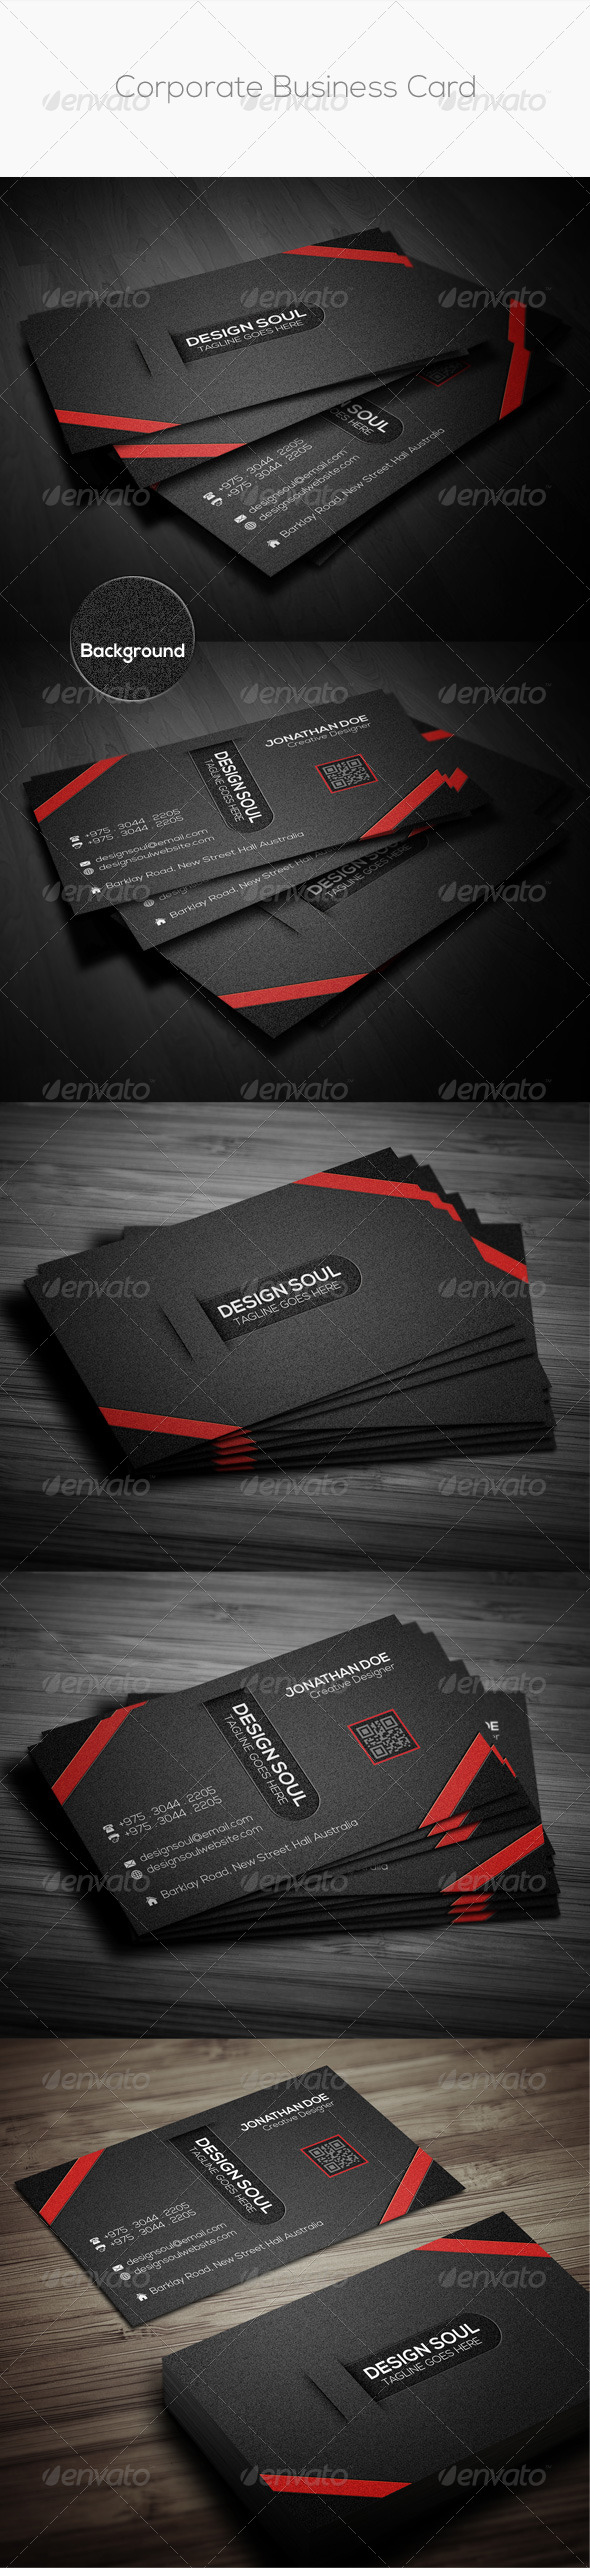 GraphicRiver Corporate Business Card 8752232